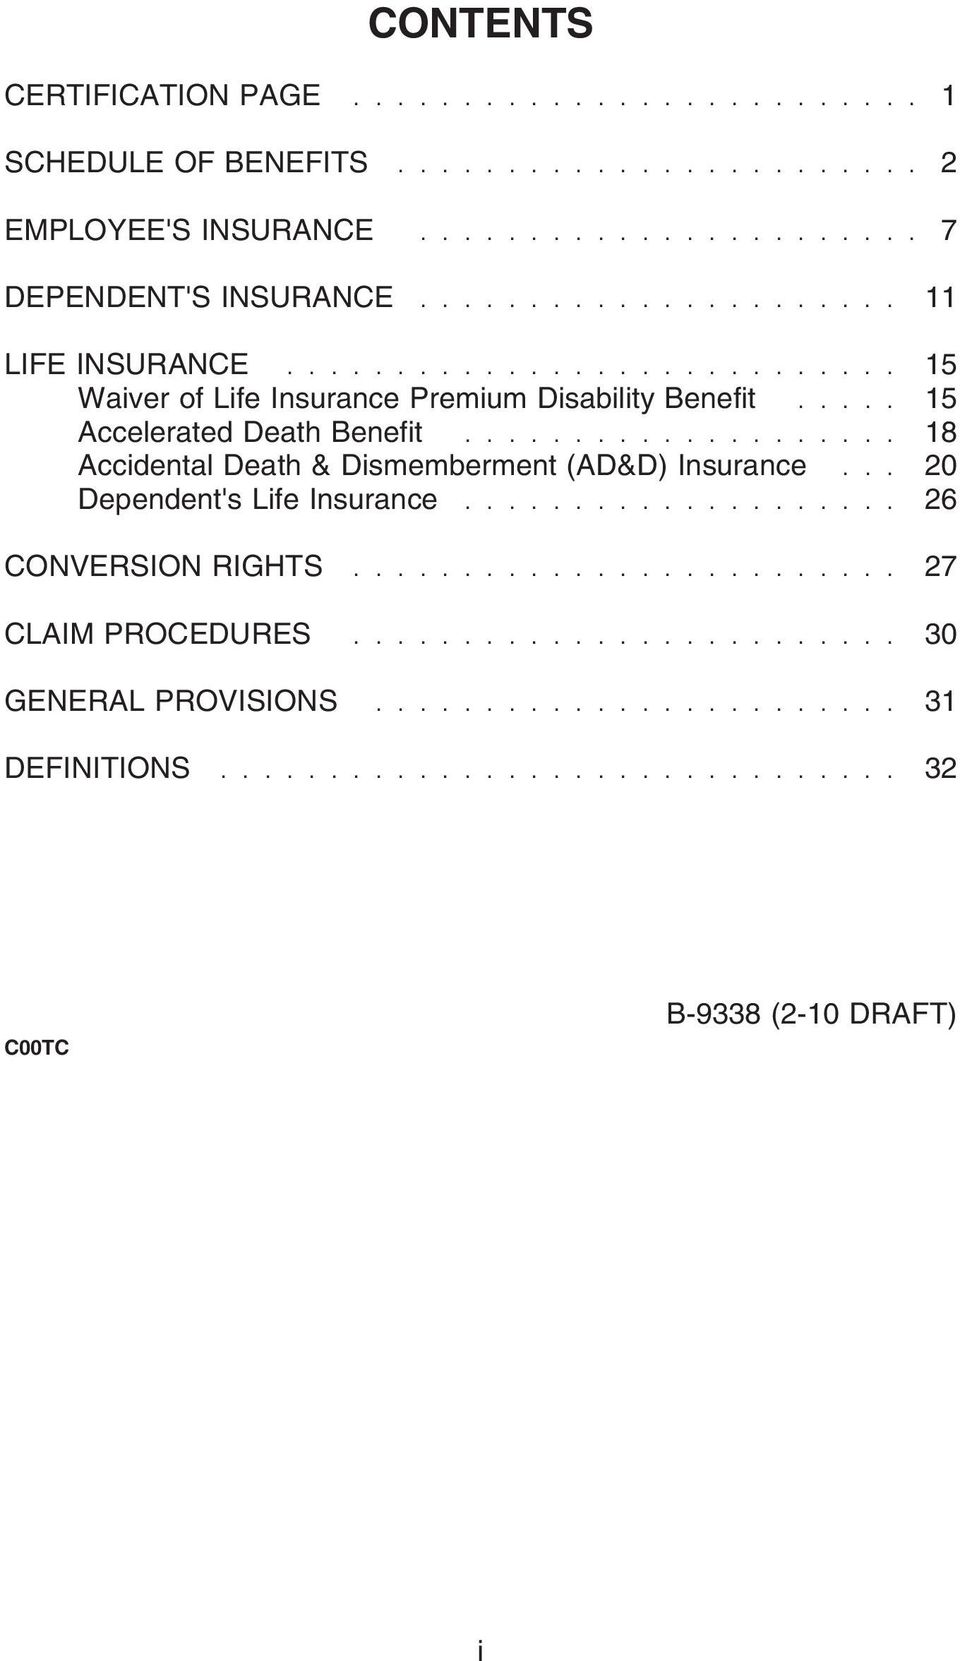 ................... 18 Accidental Death & Dismemberment (AD&D) Insurance... 20 Dependent's Life Insurance.................... 26 CONVERSION RIGHTS.